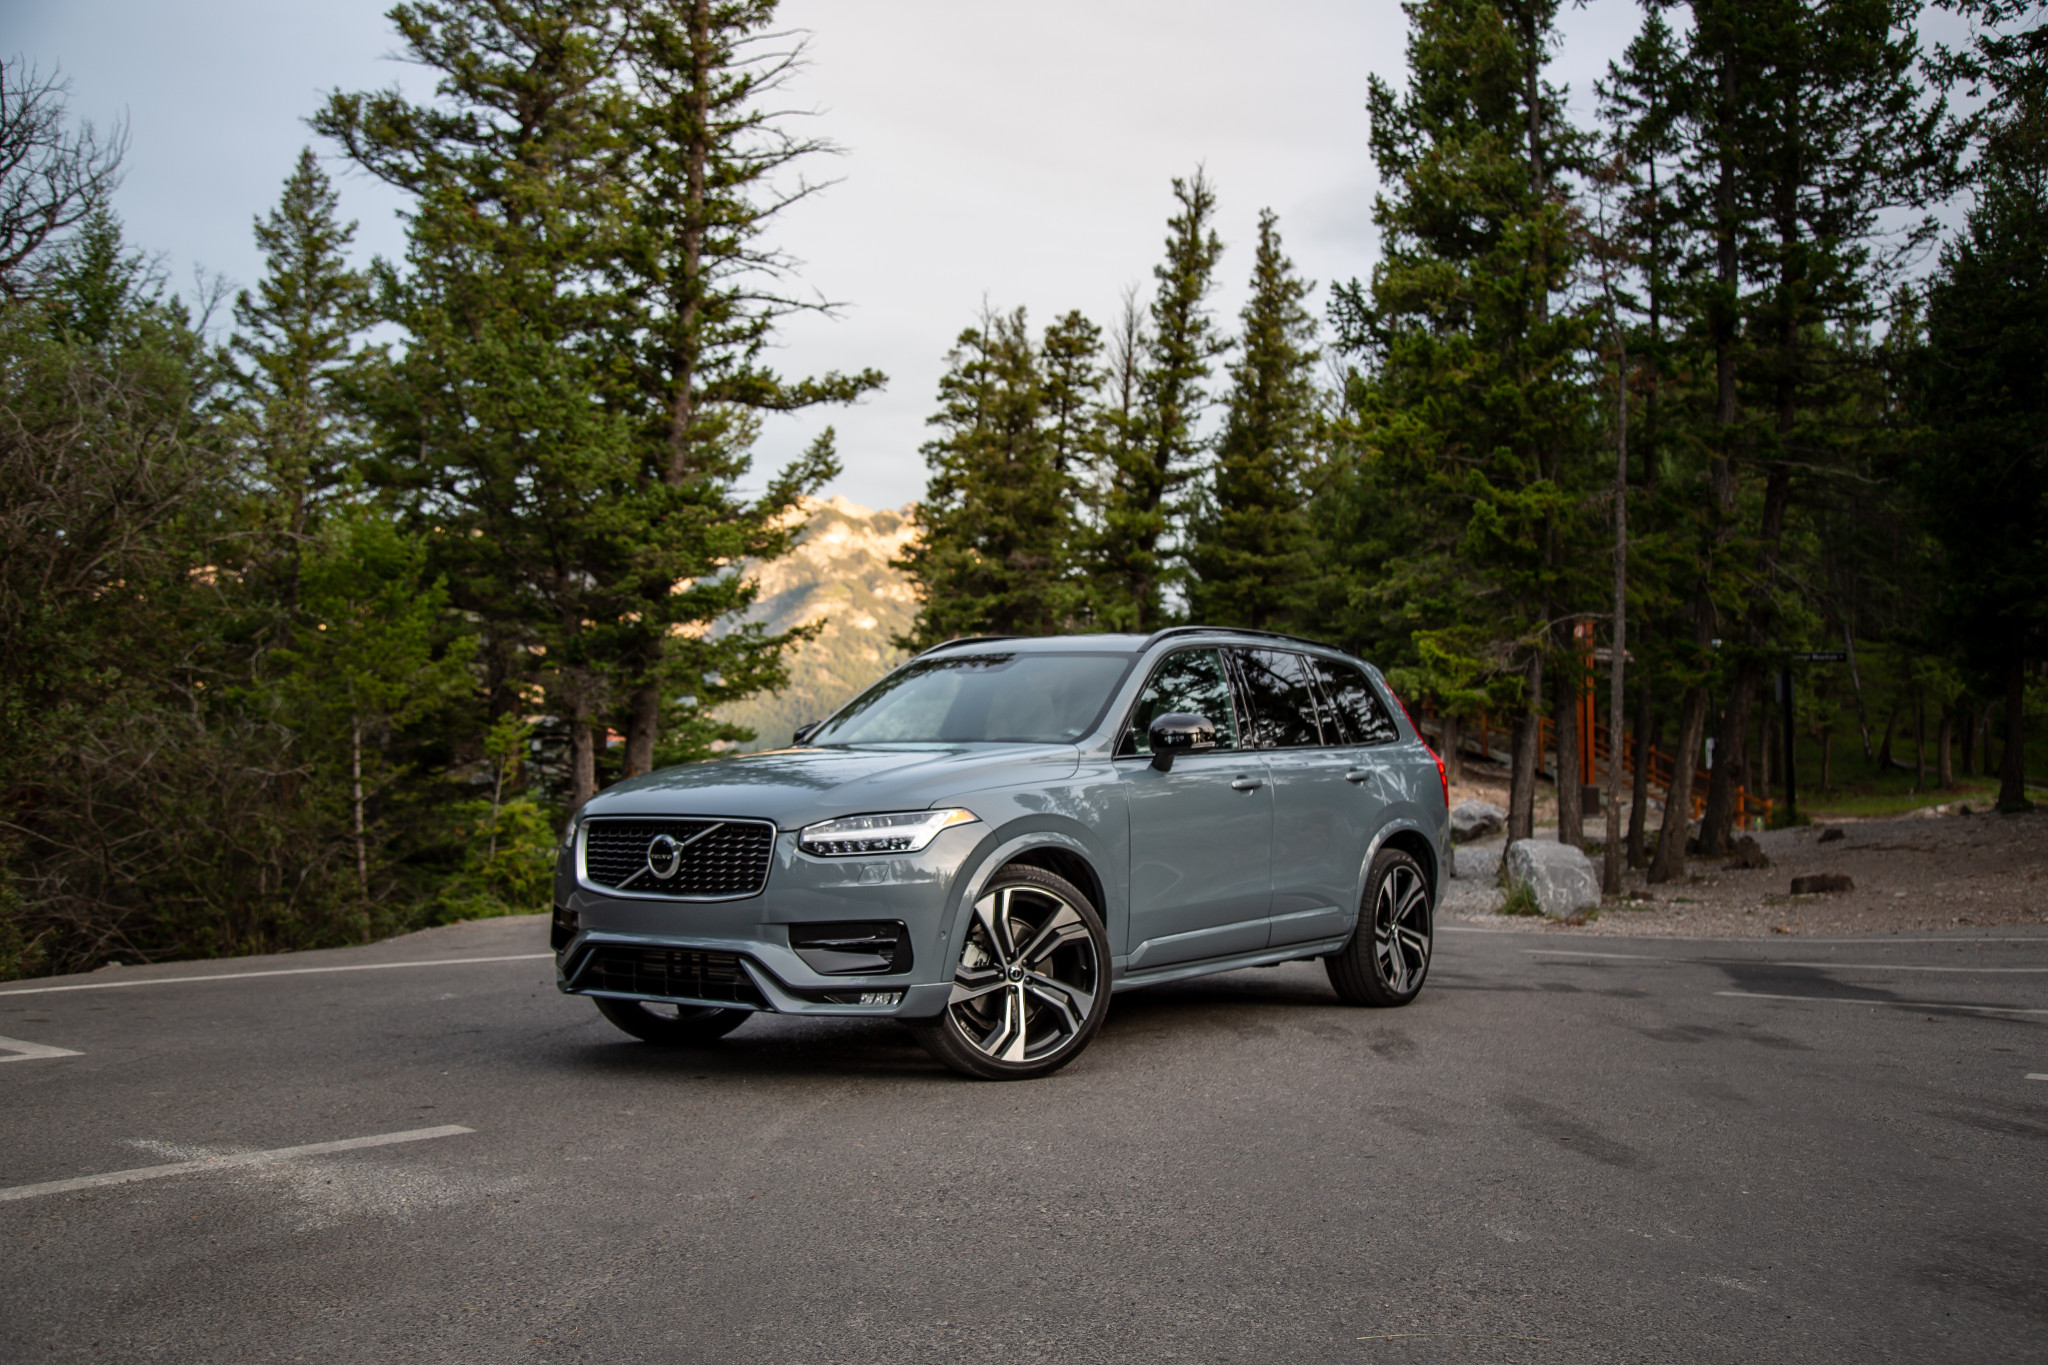 2020 Volvo XC90 Review: An Aging Icon Learns New Tricks ...